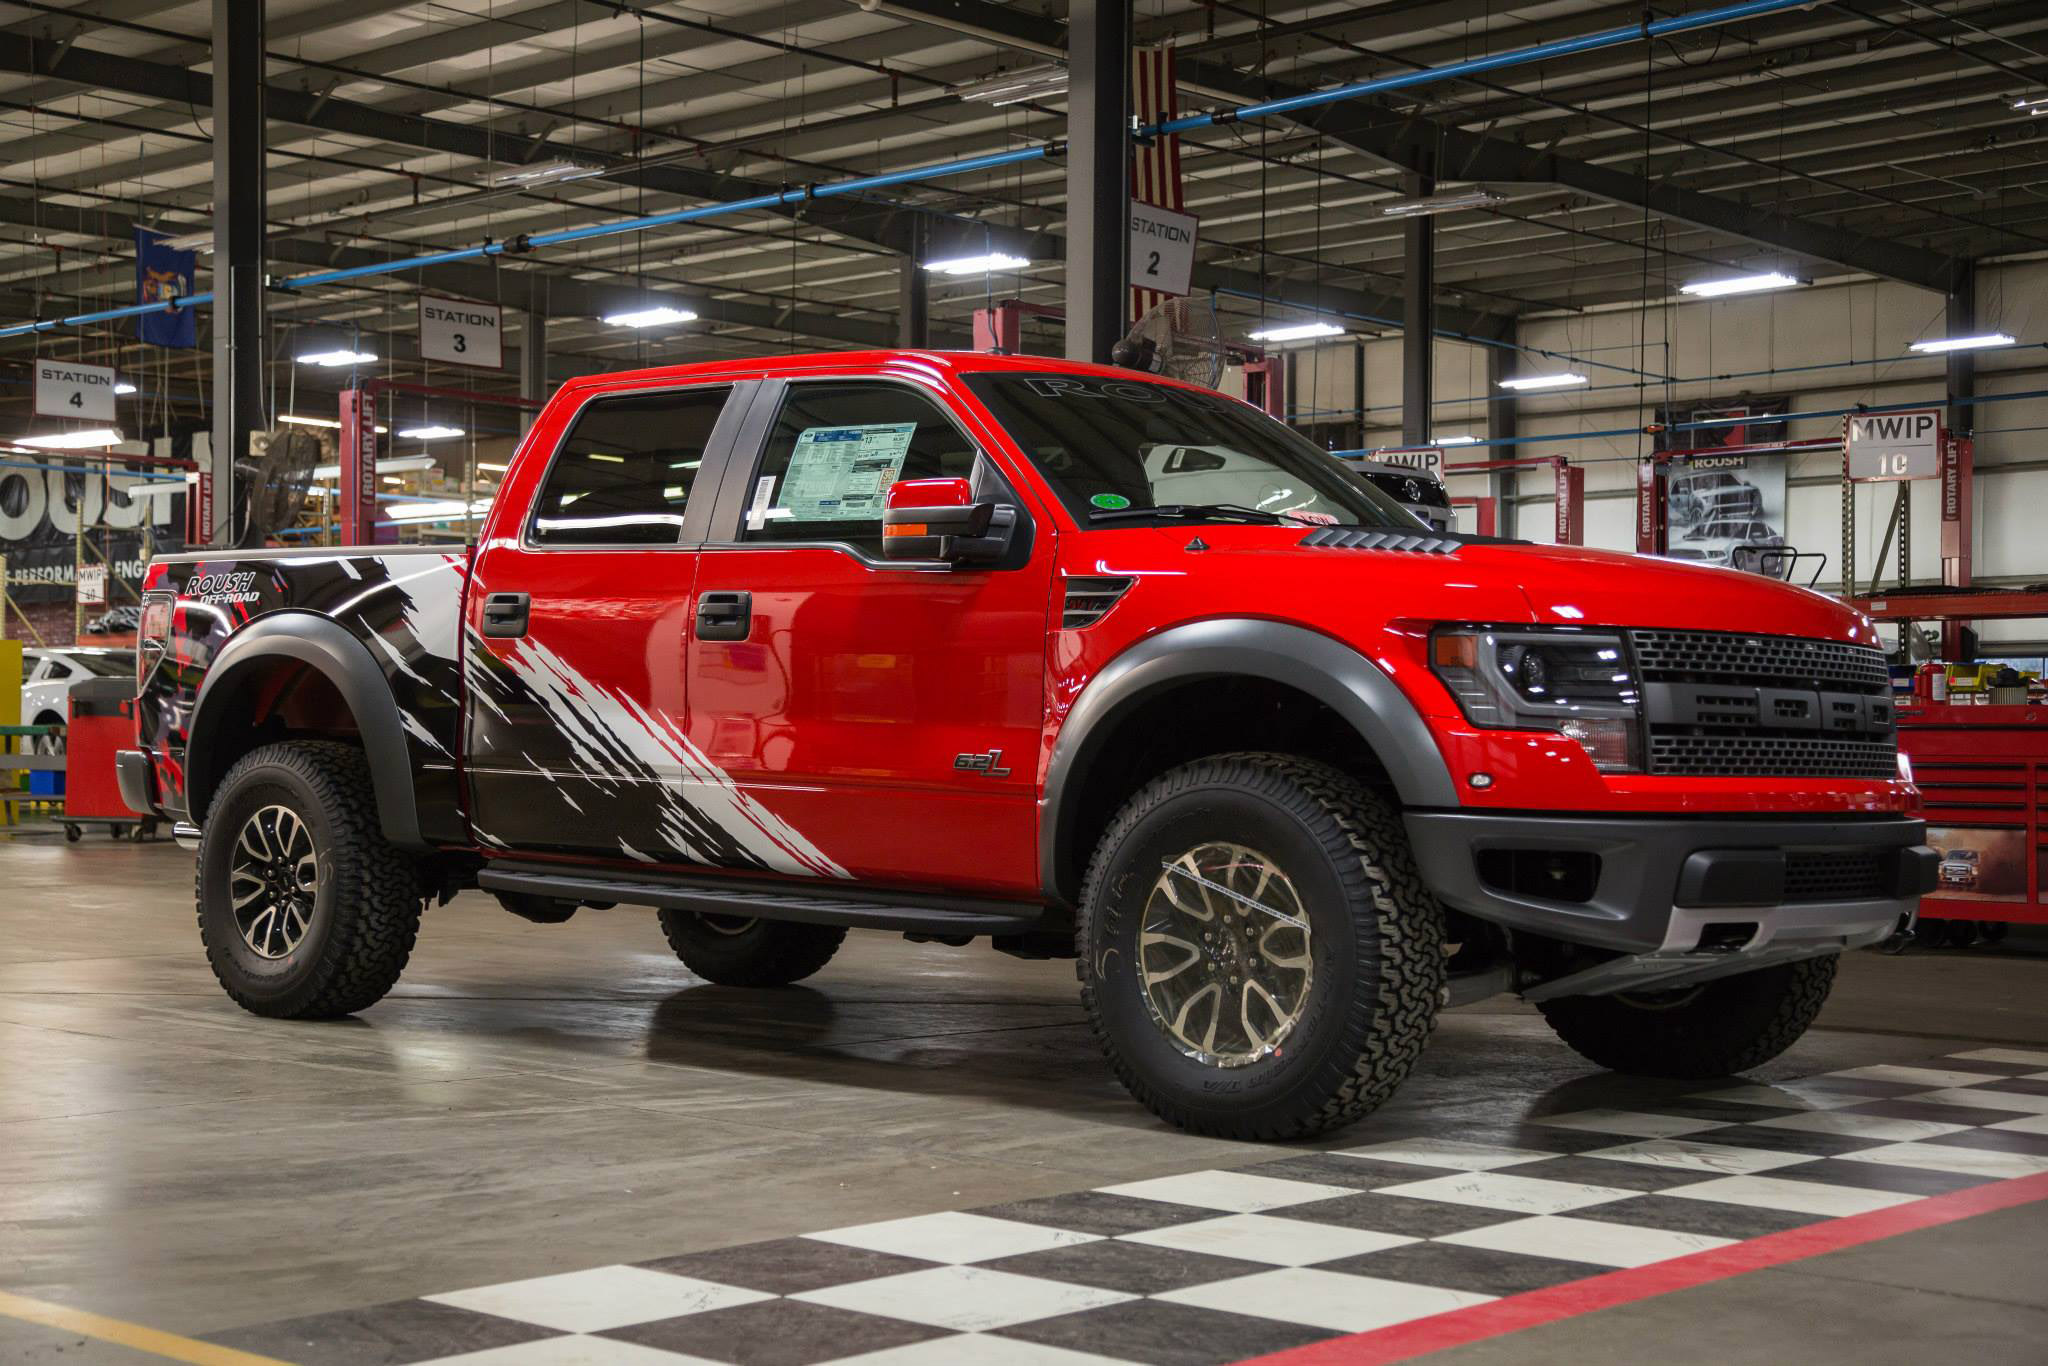 2014 Roush Off-Road Ford F-150 SVT Raptor With Custom Graphics